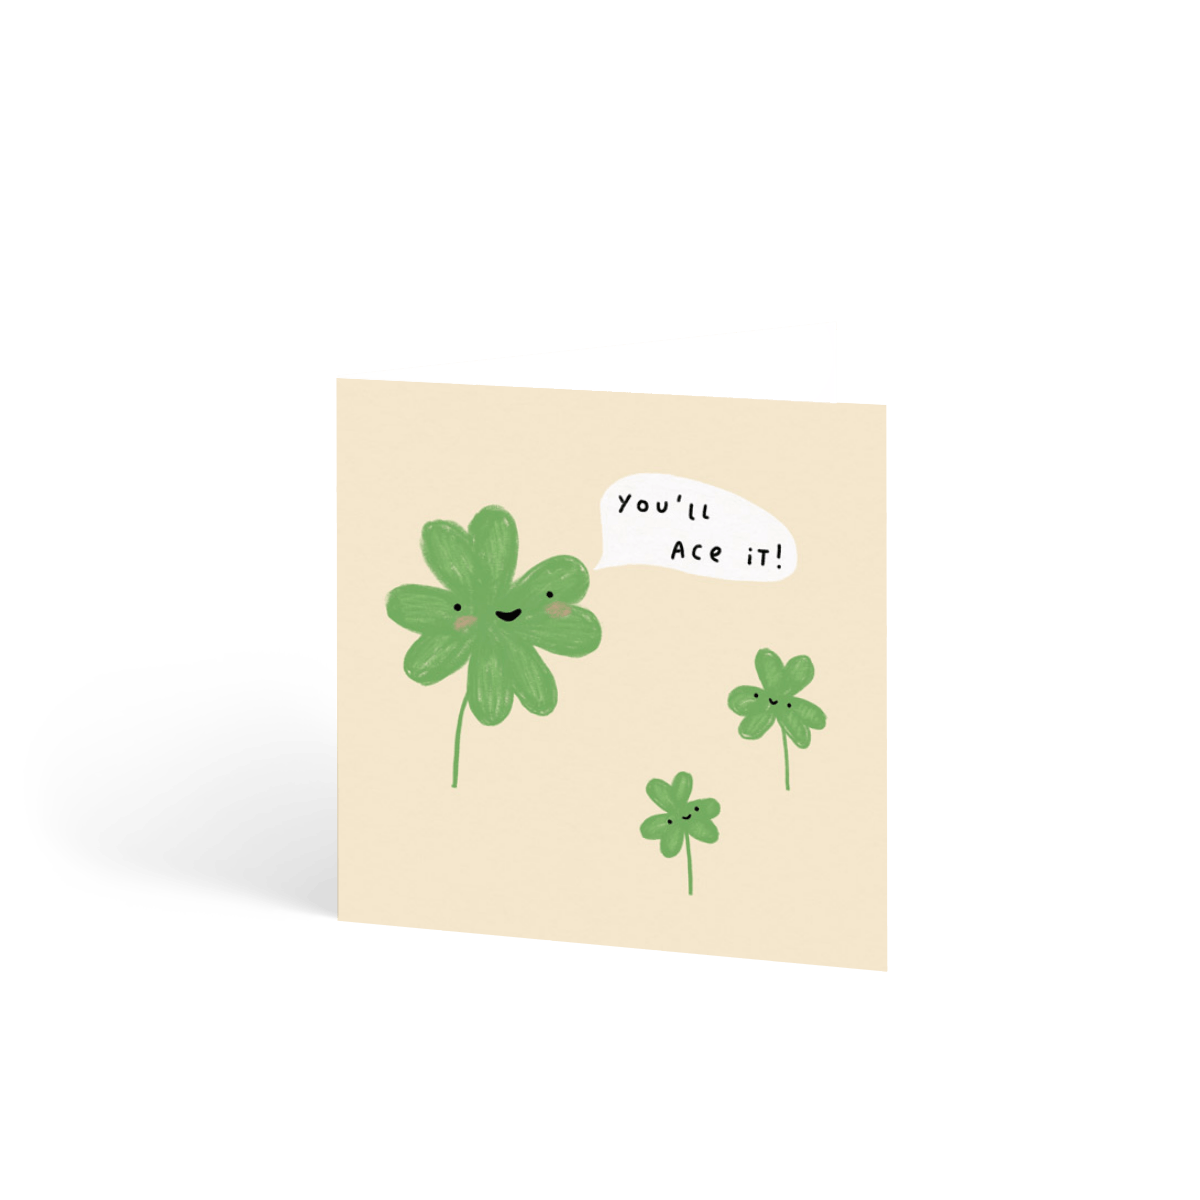 Https%3a%2f%2fwww.papier.com%2fproduct image%2f37081%2f16%2ffour leaf clover 9329 front 1525363714.png?ixlib=rb 1.1